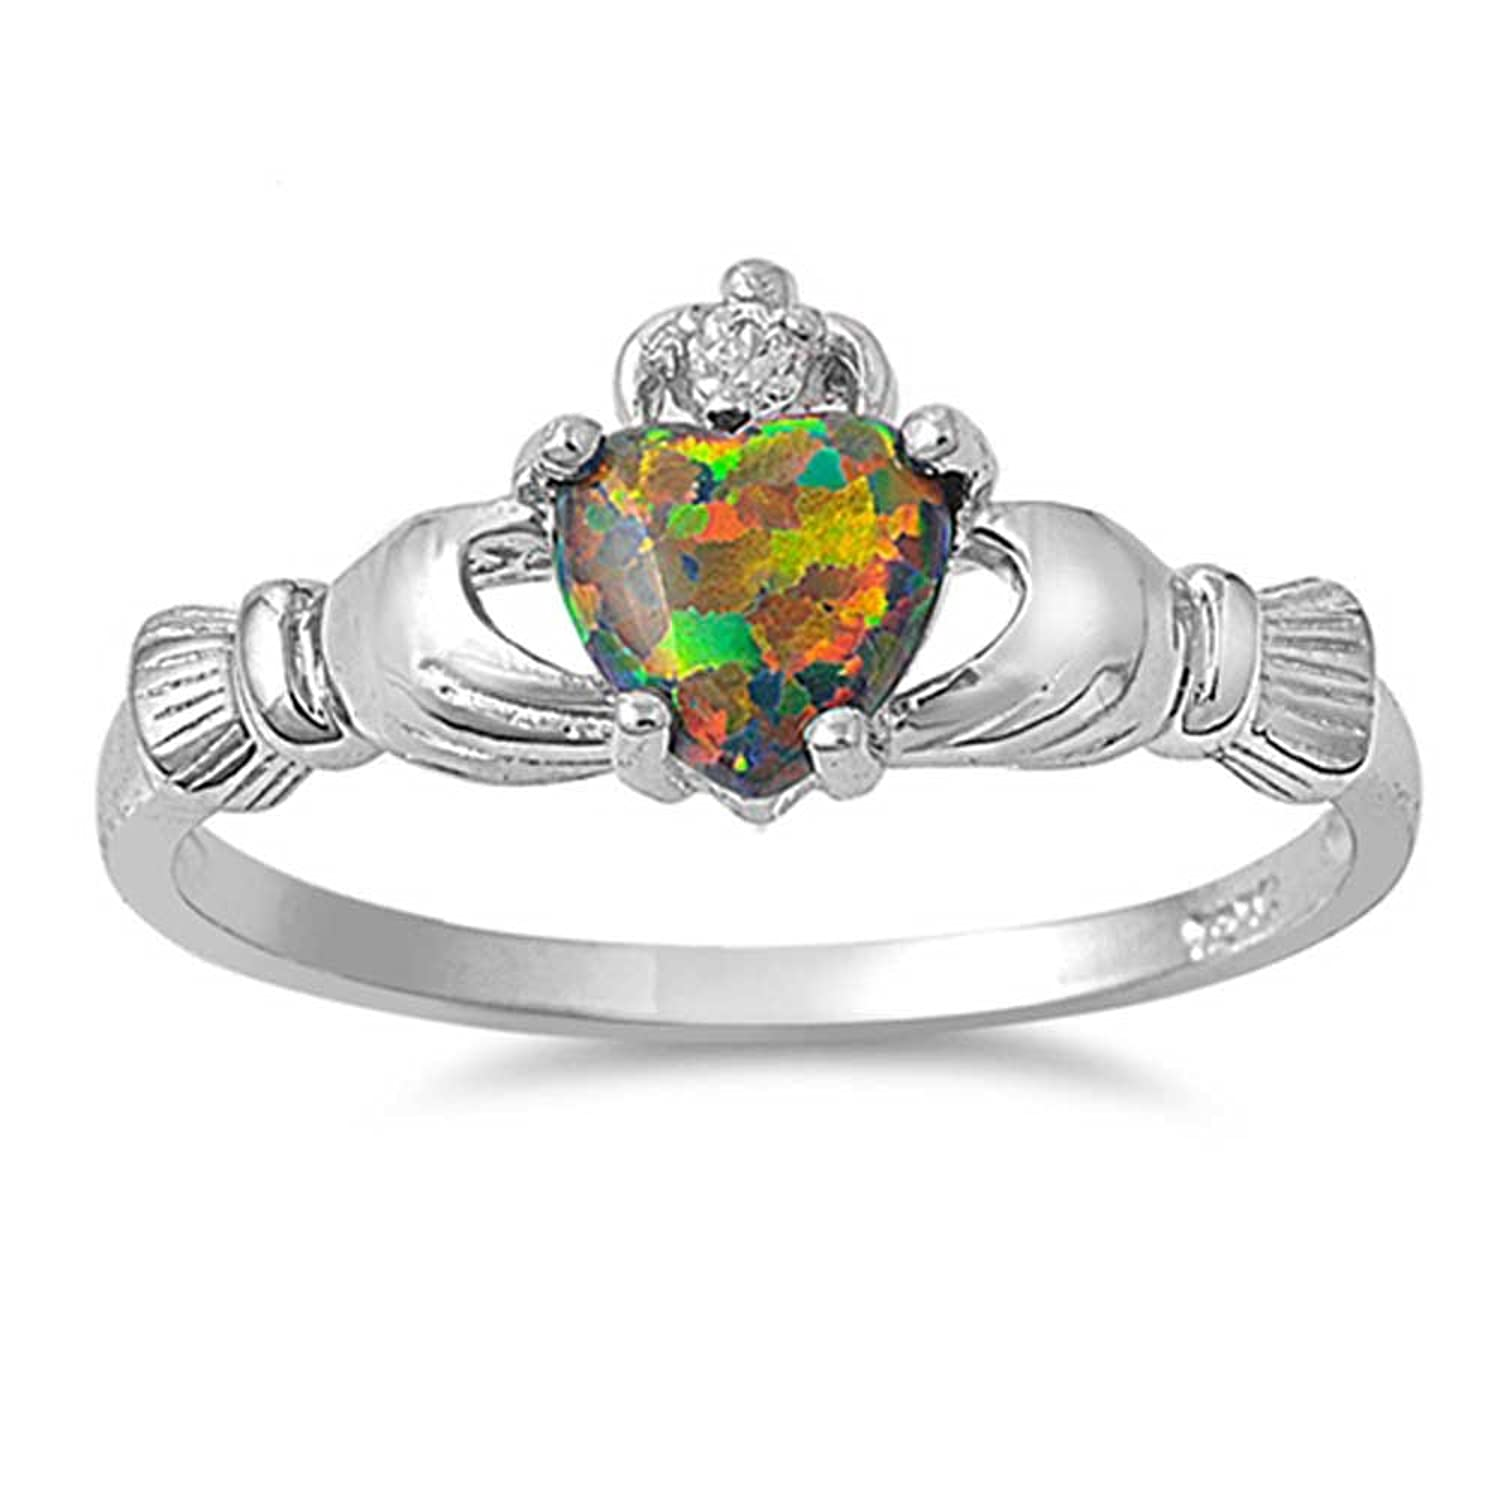 Amazoncom 9MM 2ctw Sterling Silver BLACK OPAL LAB CREATED MULTI